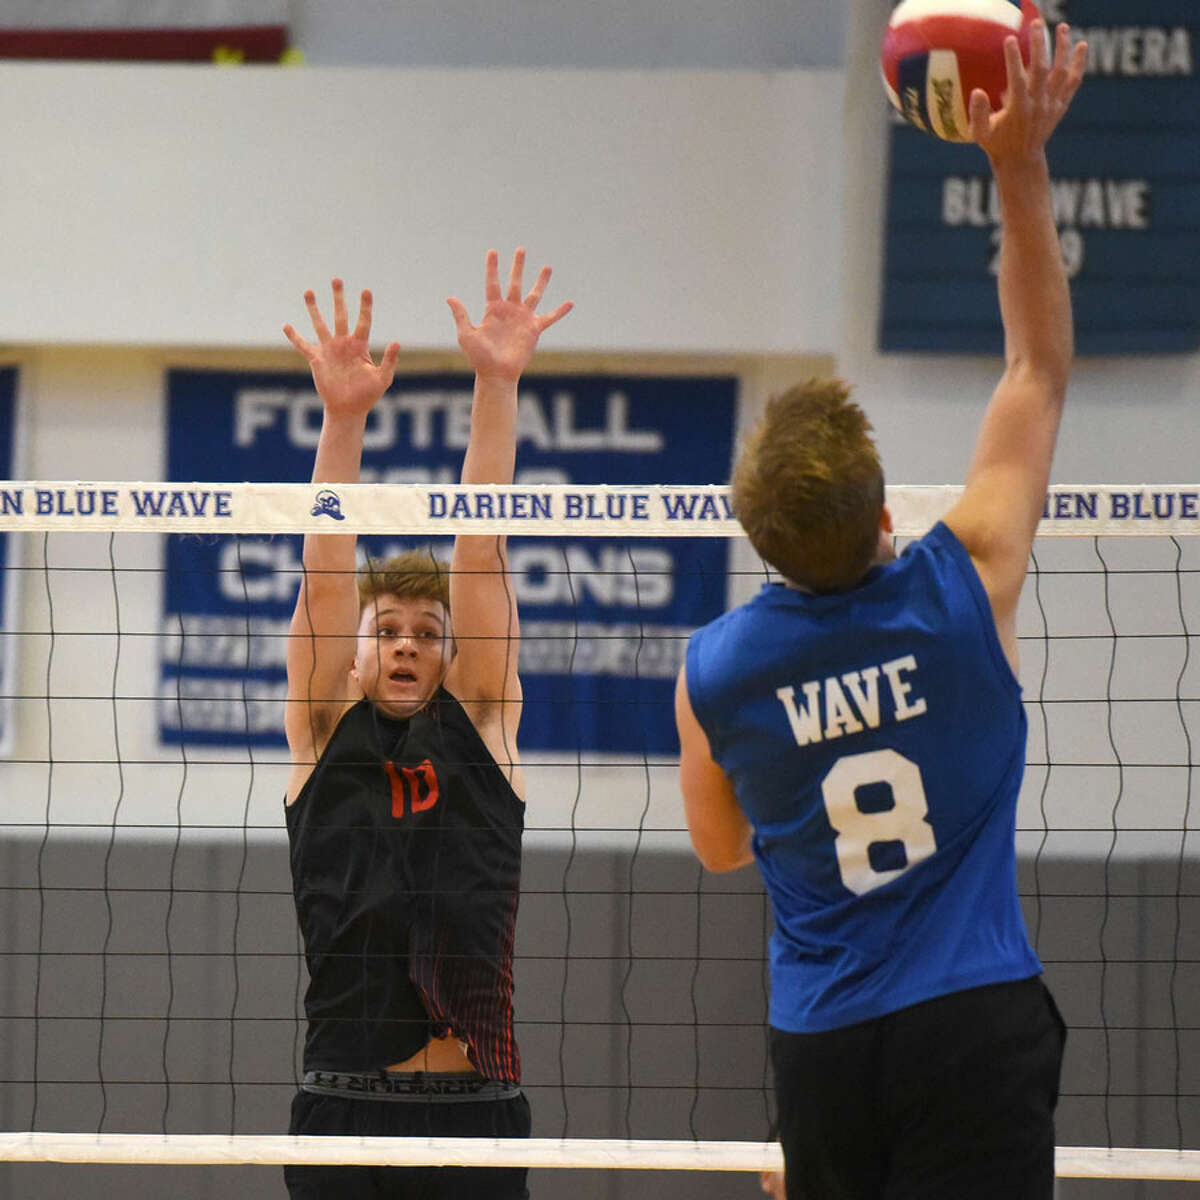 New Canaan's Gavin Bramwit (10) goes up to defend as Darien's Tyler Herget (8) hits a shot during a boys volleyball match on Wednesday. - Dave Stewart/Hearst Connecticut Media